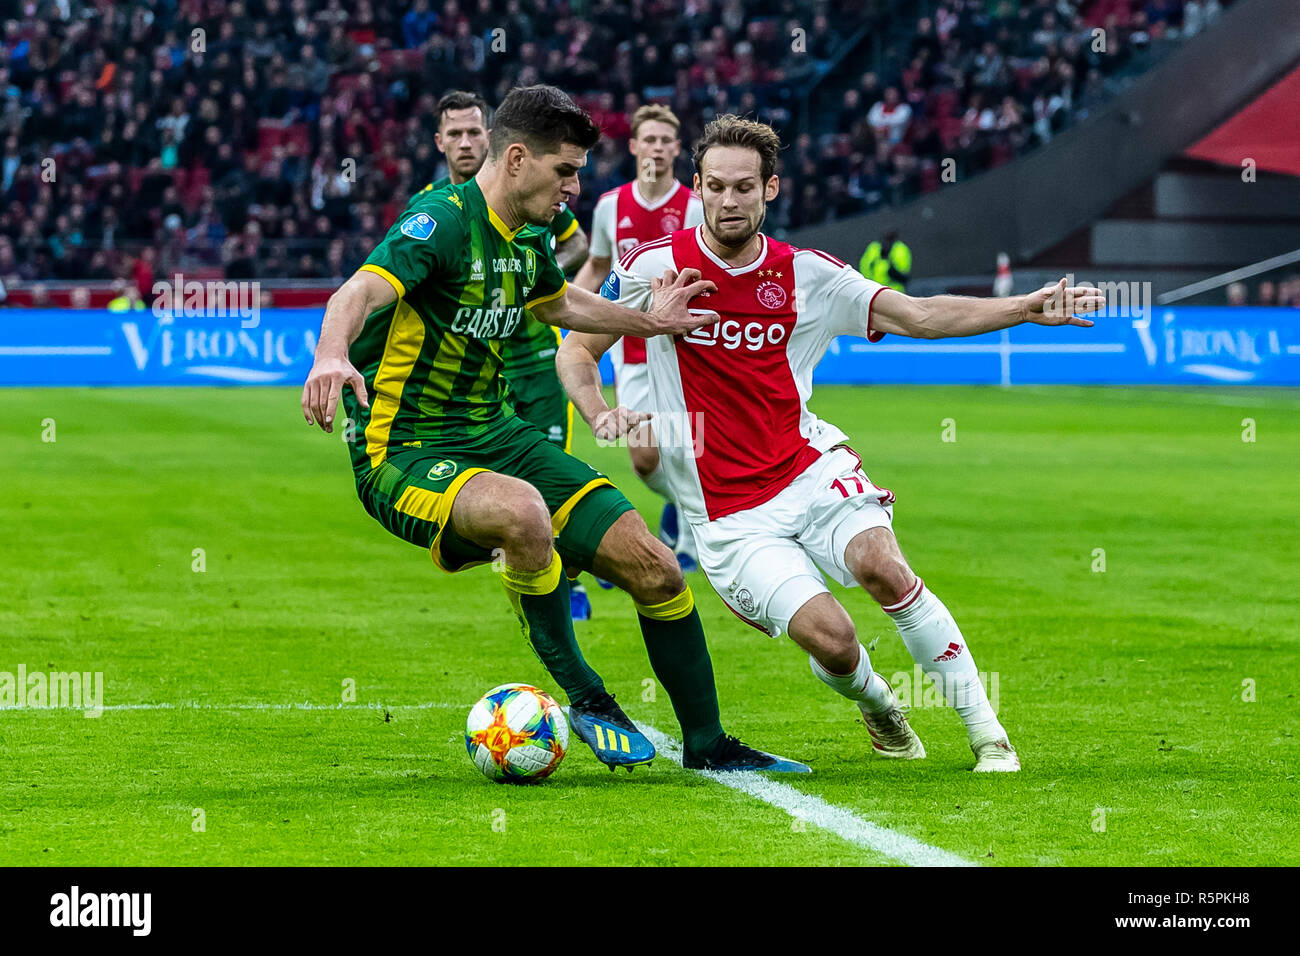 Amsterdam Netherlands 02 12 2018 Football Johan Cruijff Arena Dutch Eredivisie Season 2018 2019 Ado Den Haag Player Nick Kuipers L Ajax Player Daley Blind R During The Match Ajax Ado Final Score 5 1 Stock Photo Alamy